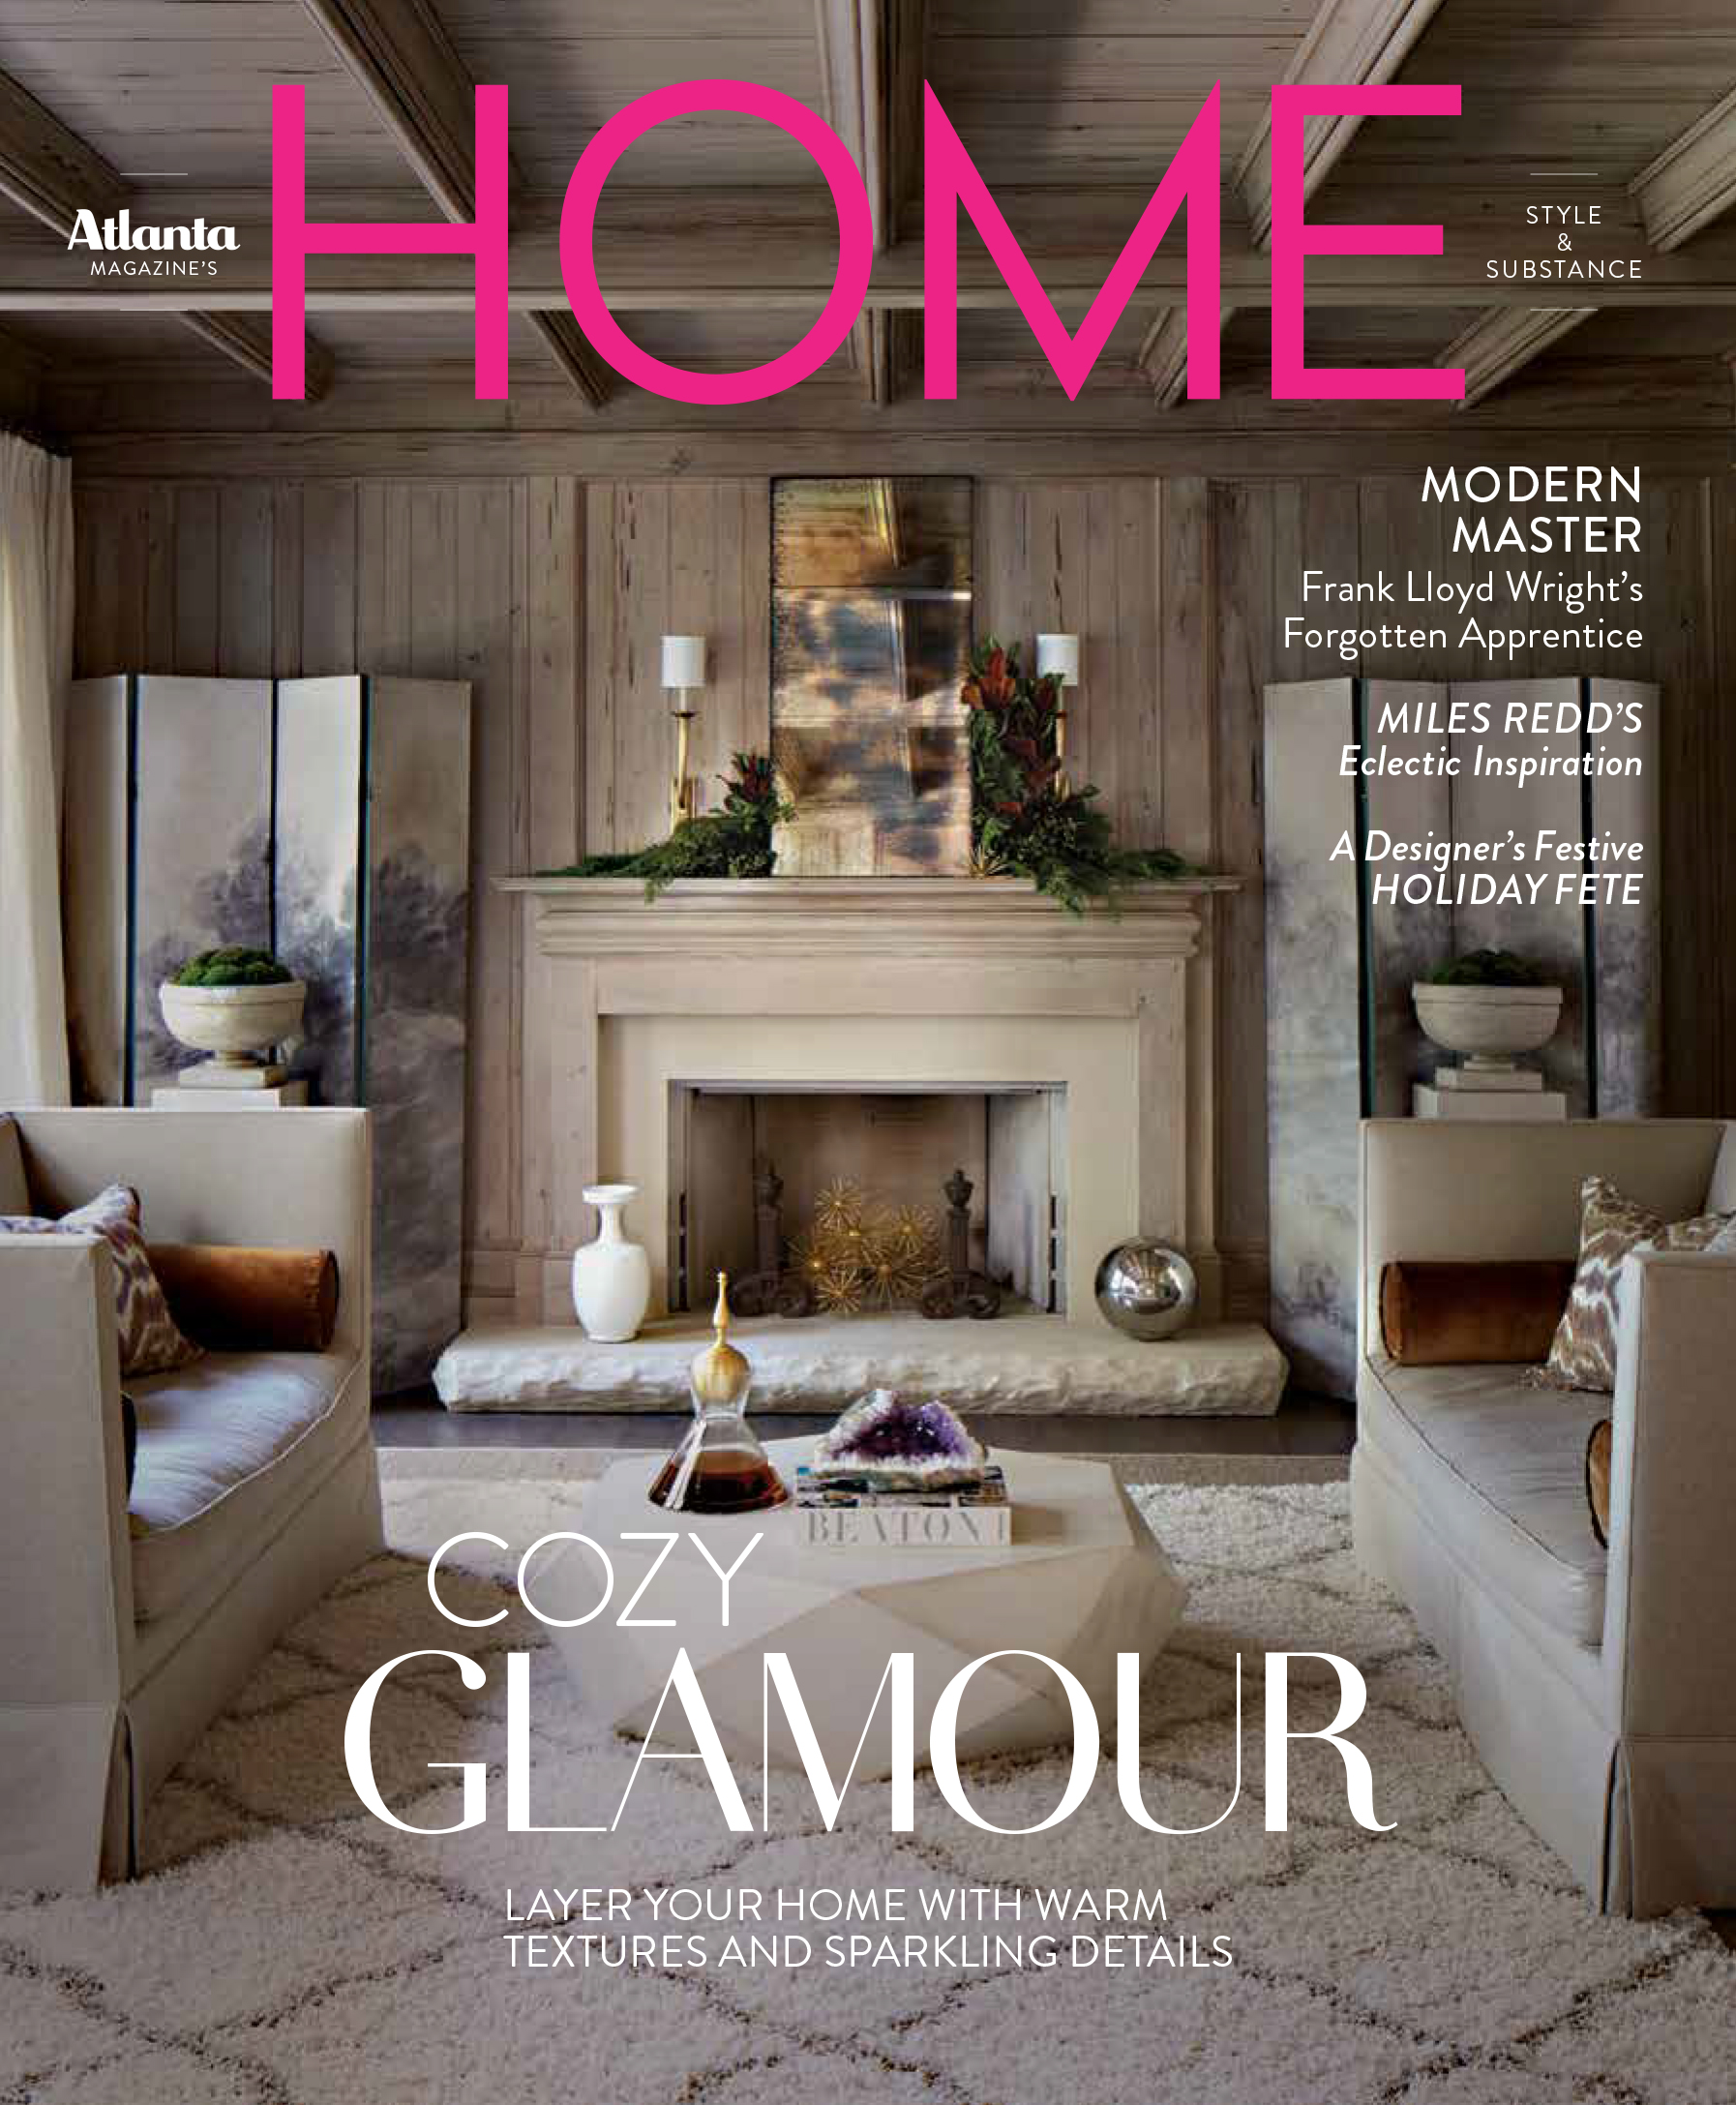 Atlanta Magazine\'s HOME